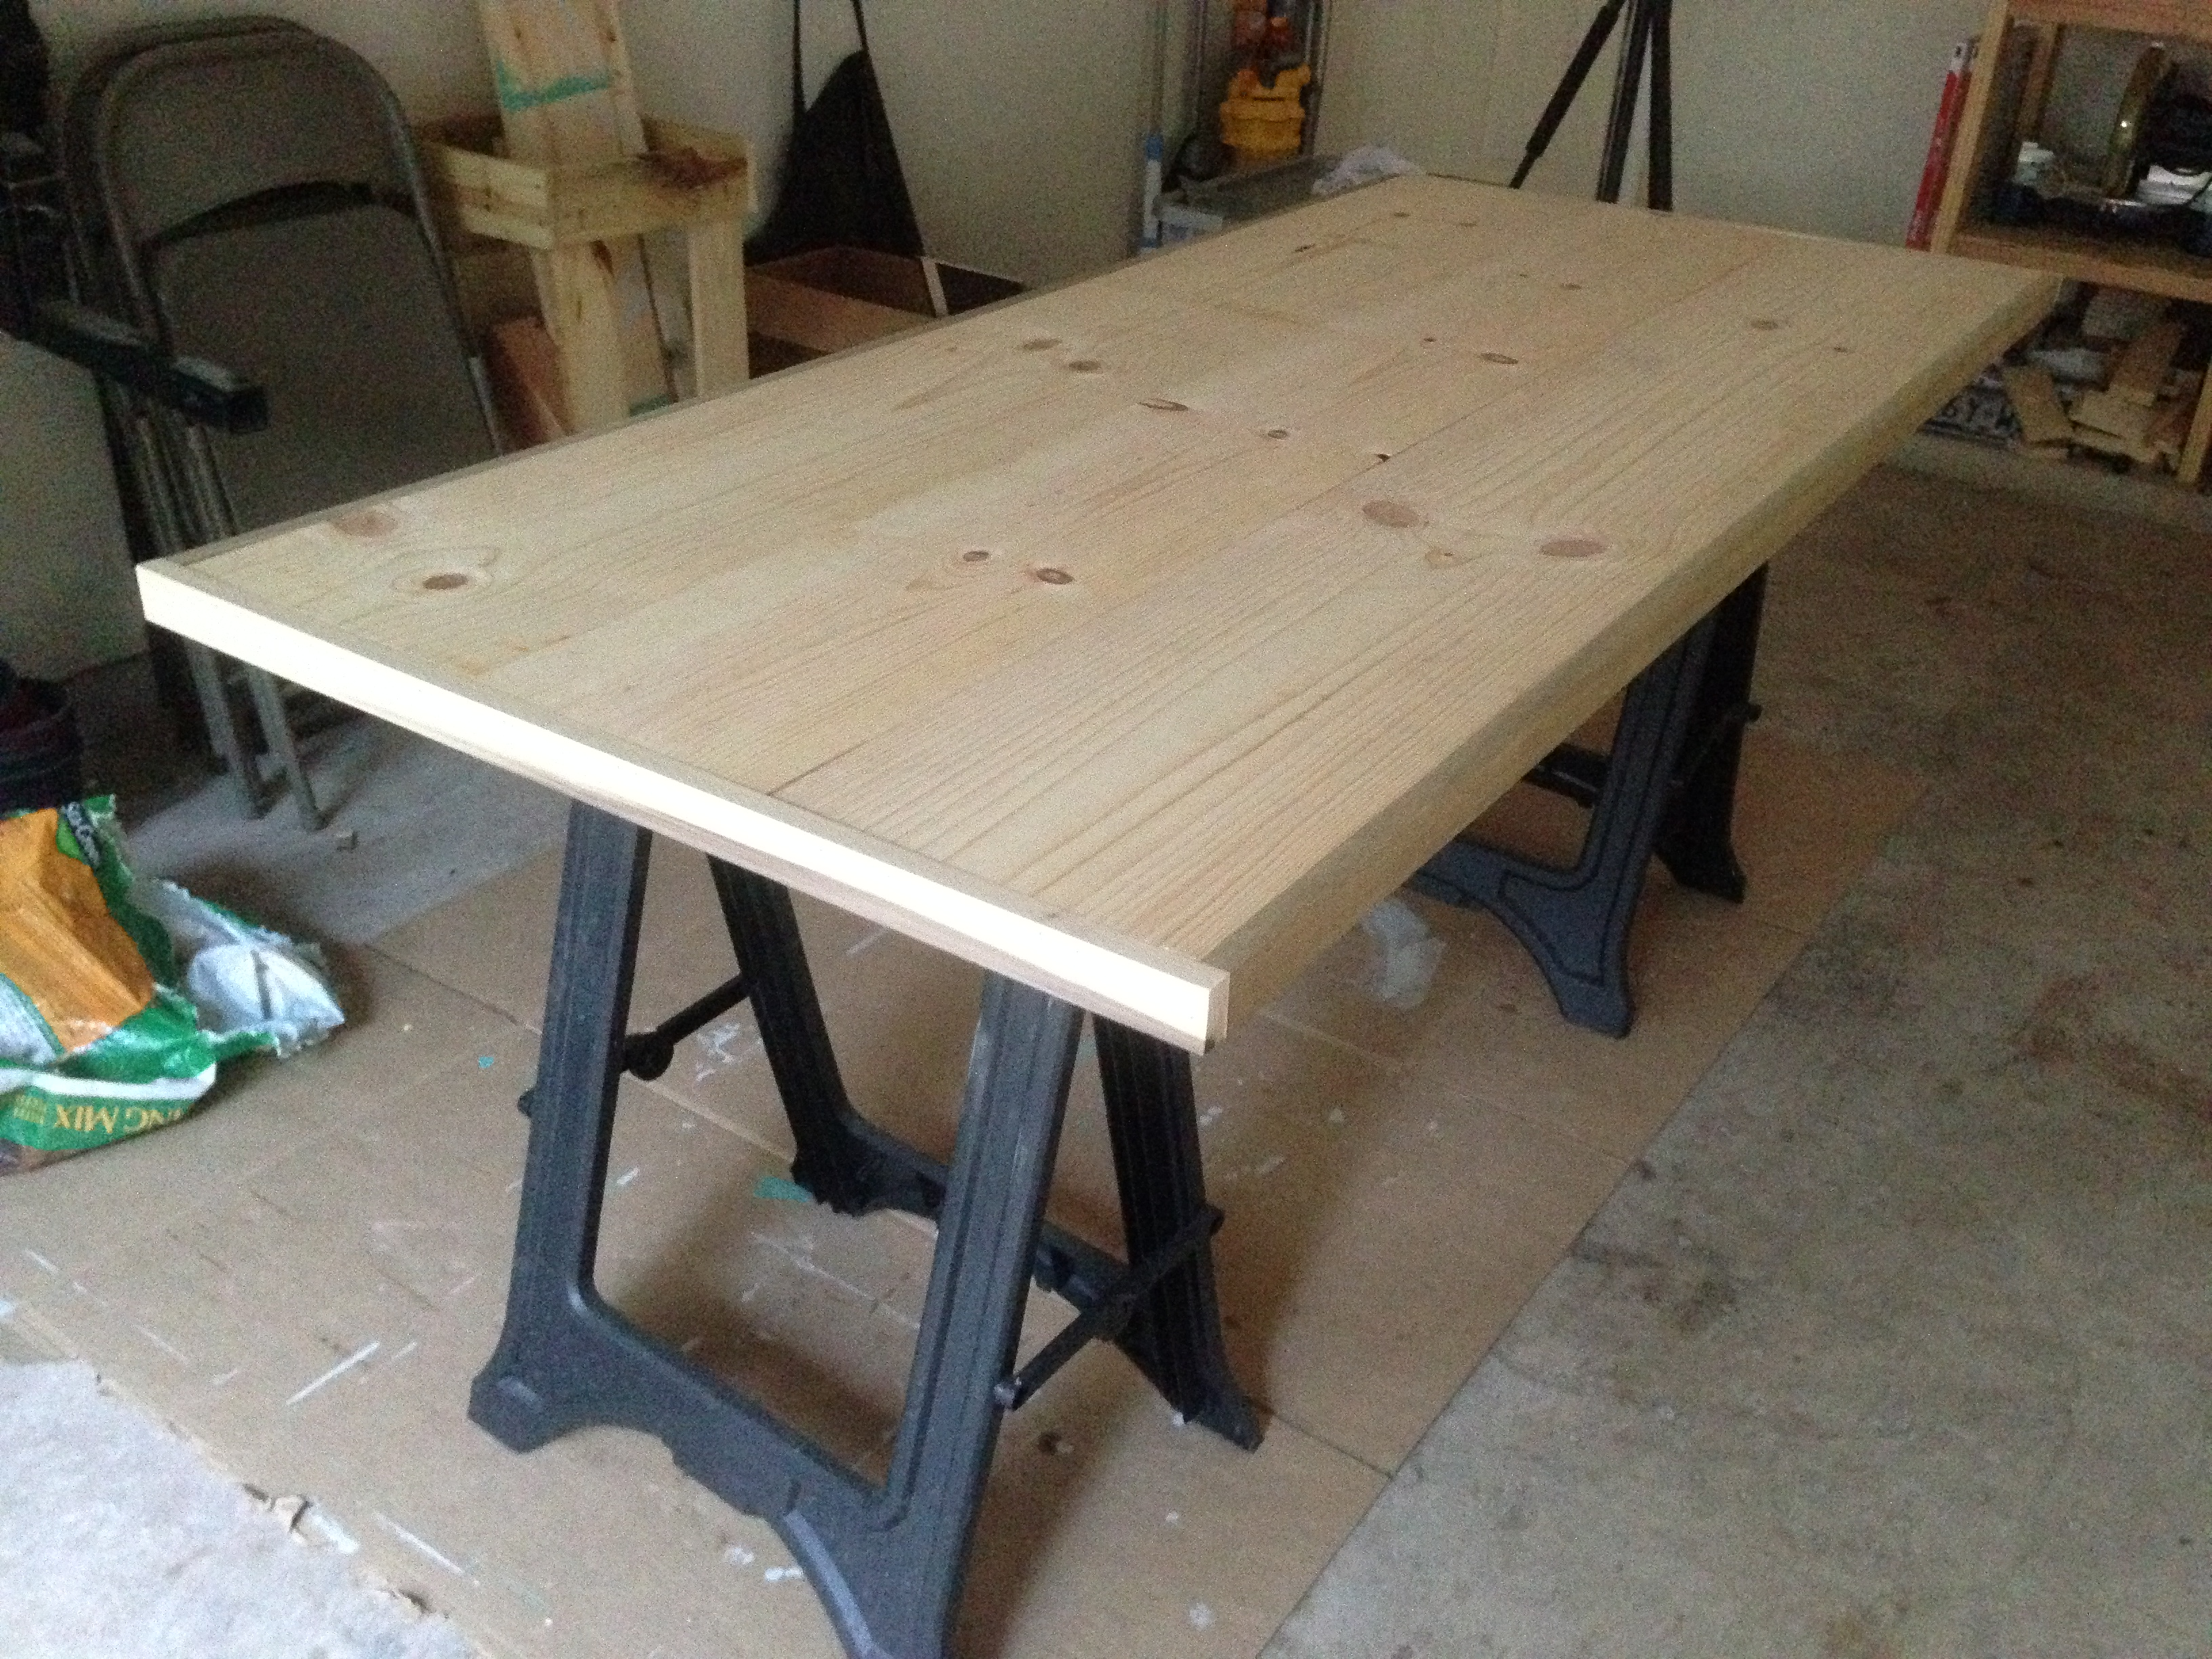 How To Straighten Warped Wood Table Top